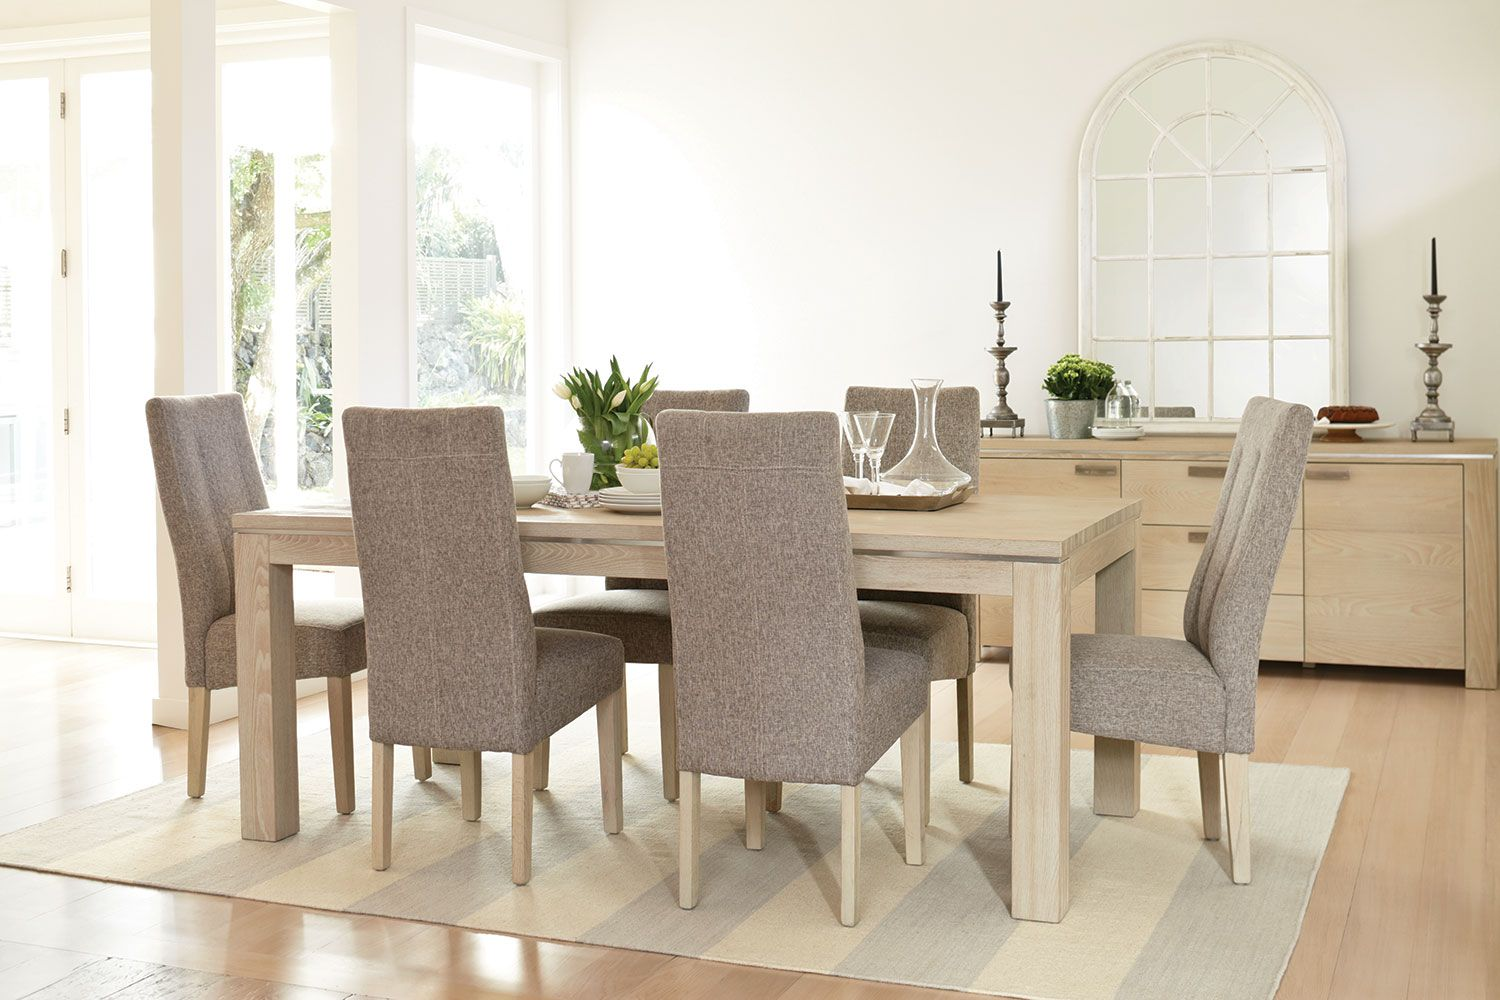 Edminton 7 Piece Dining Suite By Morgan Furniture Harvey Norman